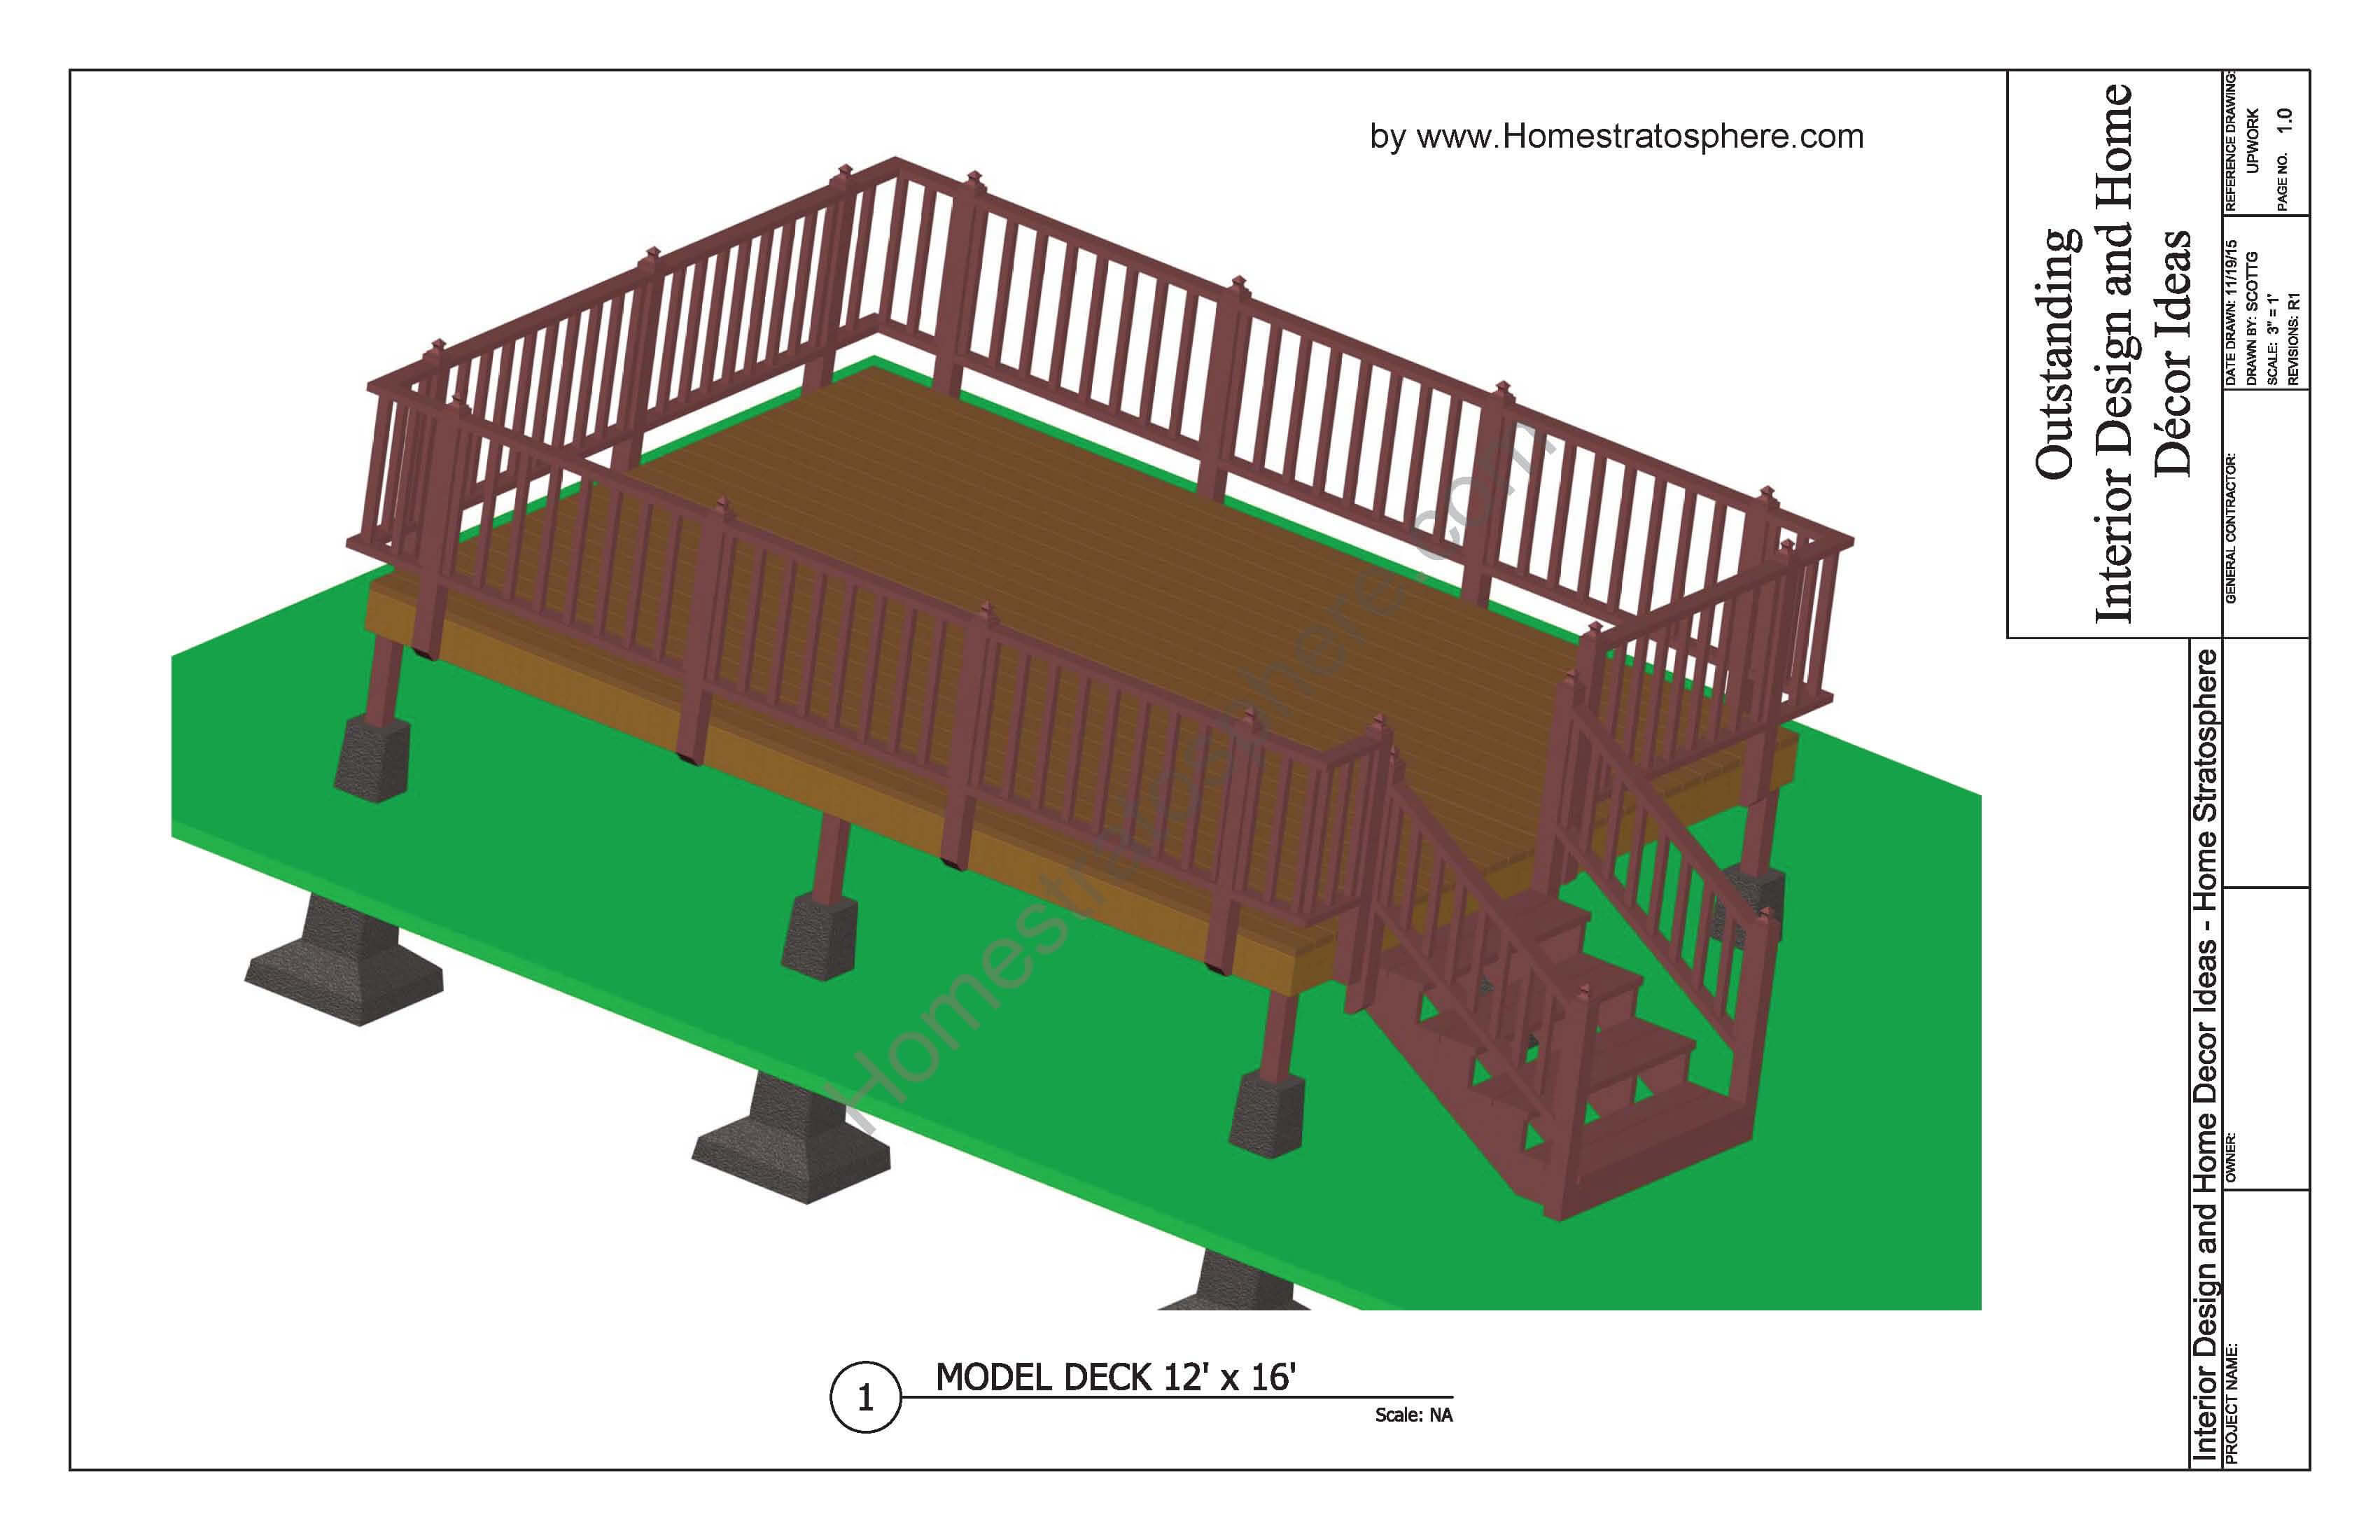 free deck plans and blueprints online with pdf downloads For12x16 Deck Plans